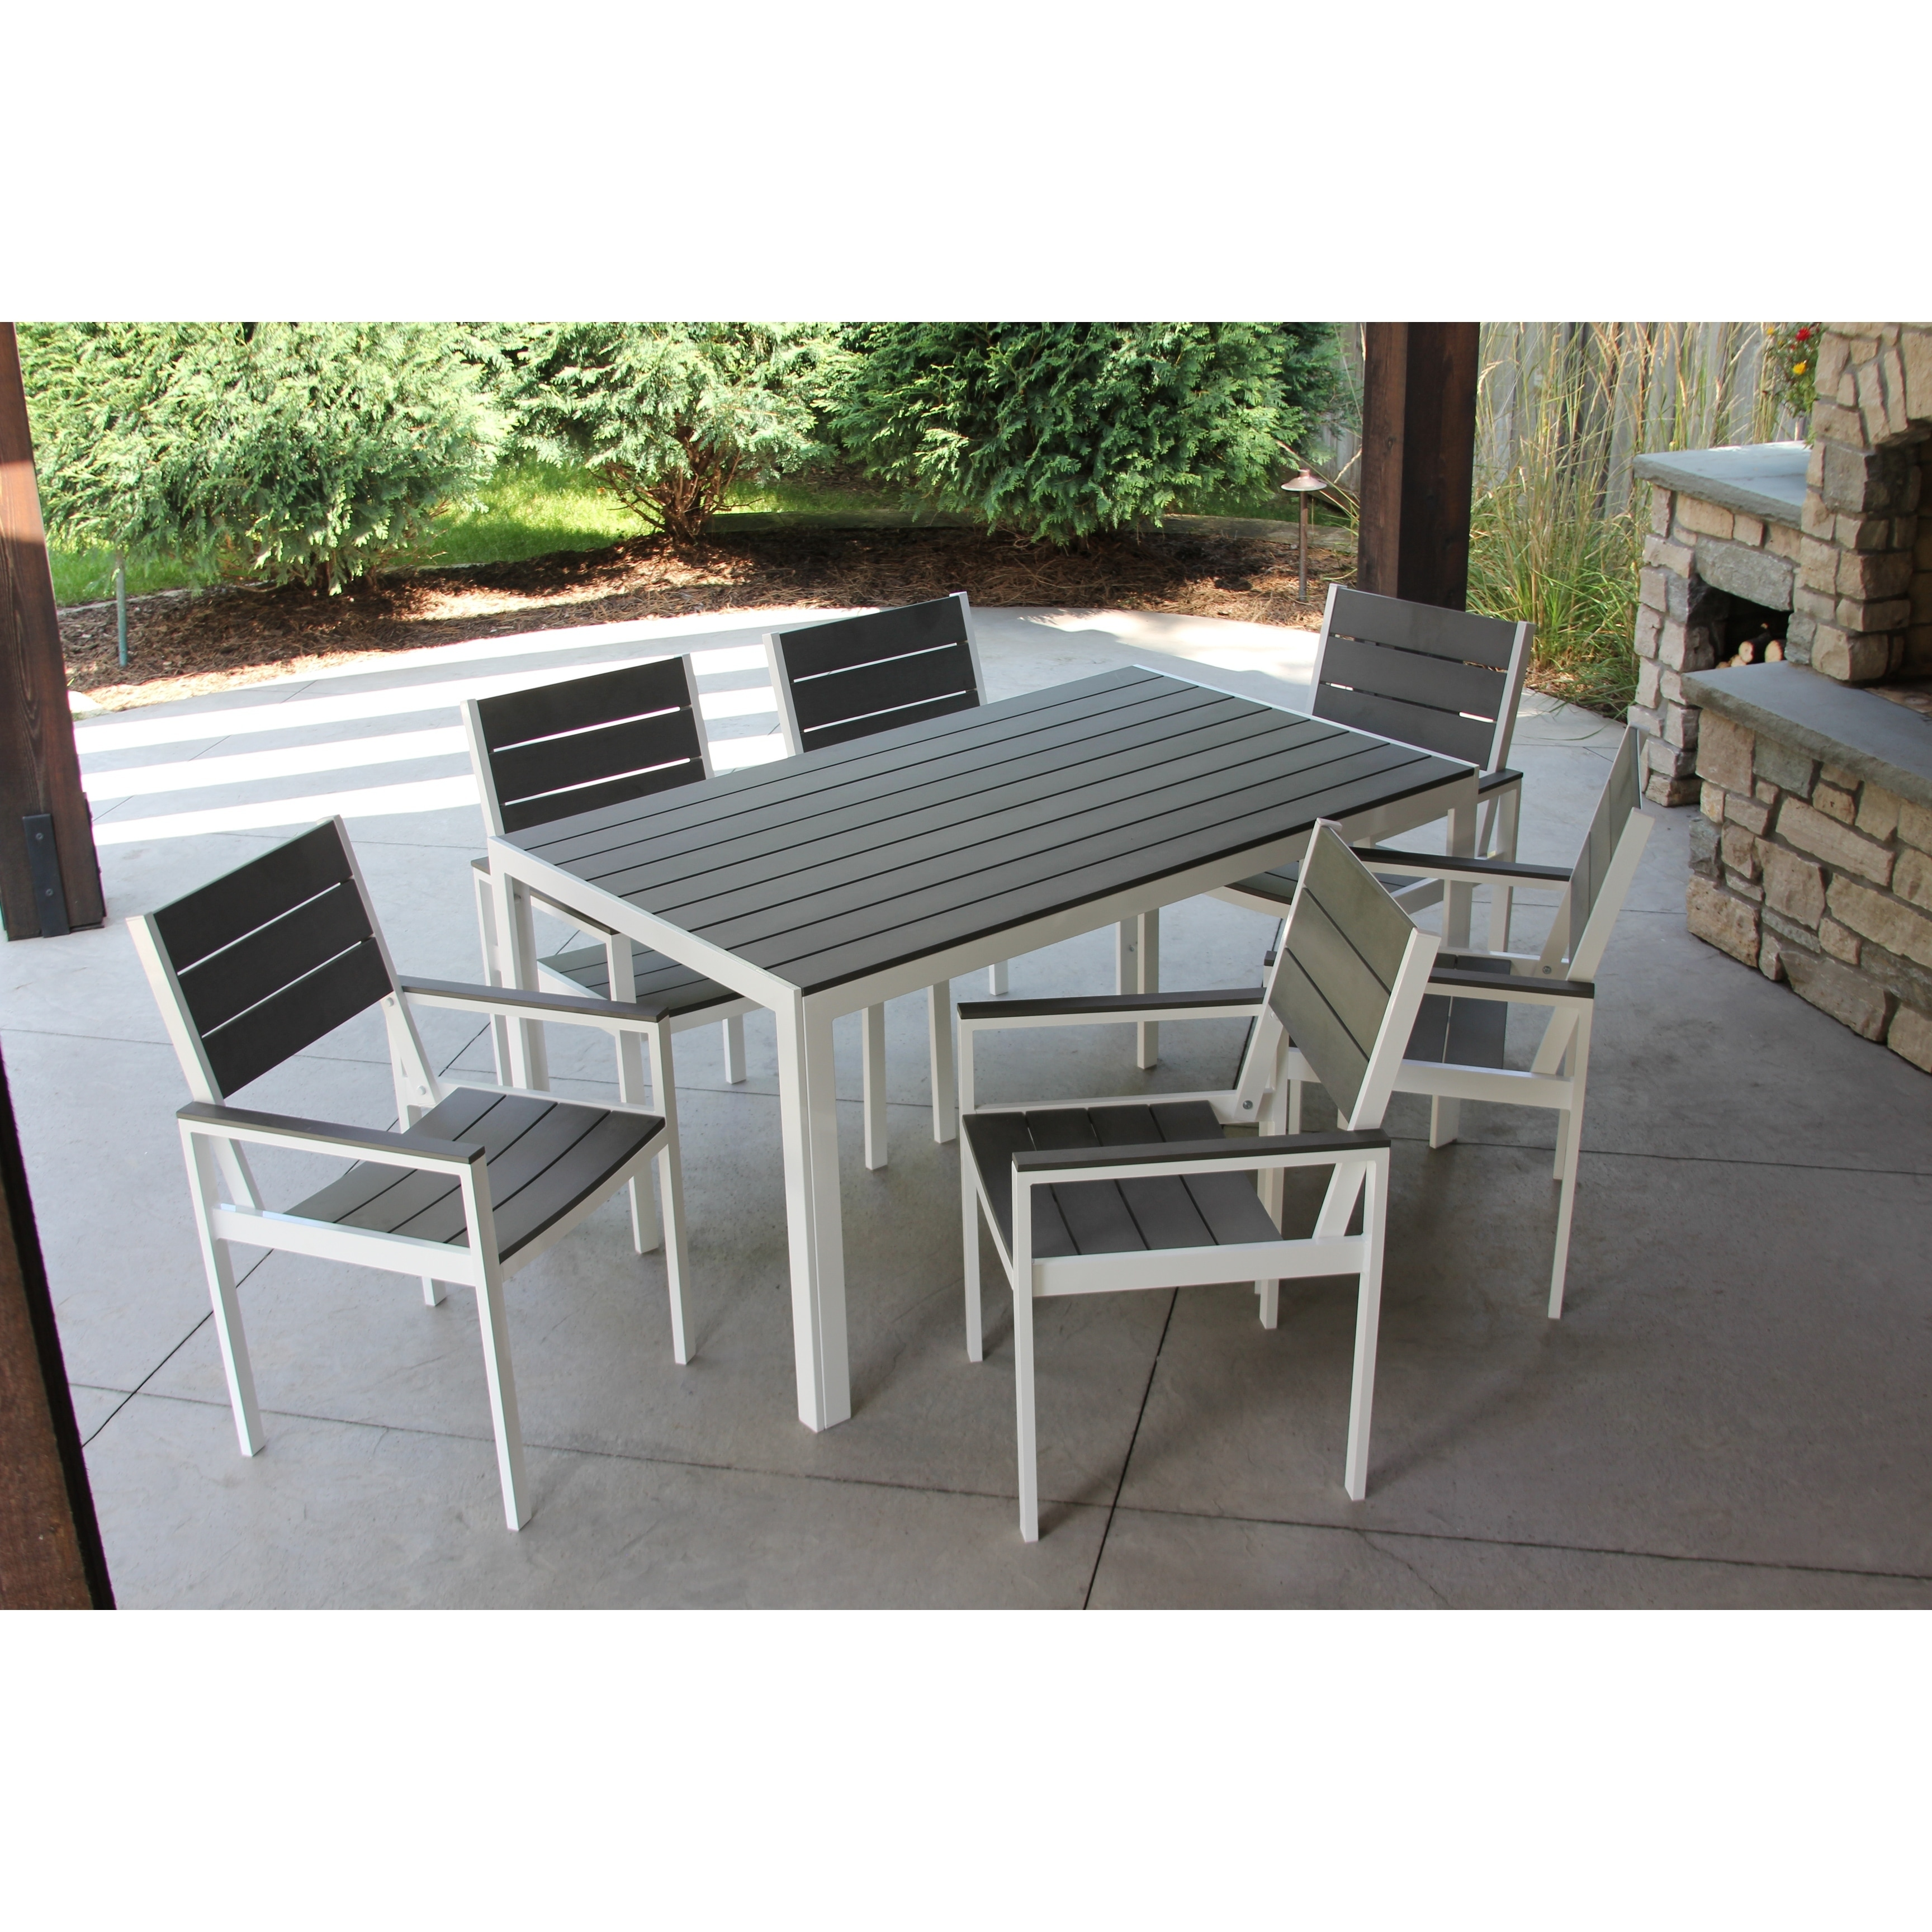 Winston 7pc White And Grey Aluminum Wood Outdoor Dining Set Overstock 21881108